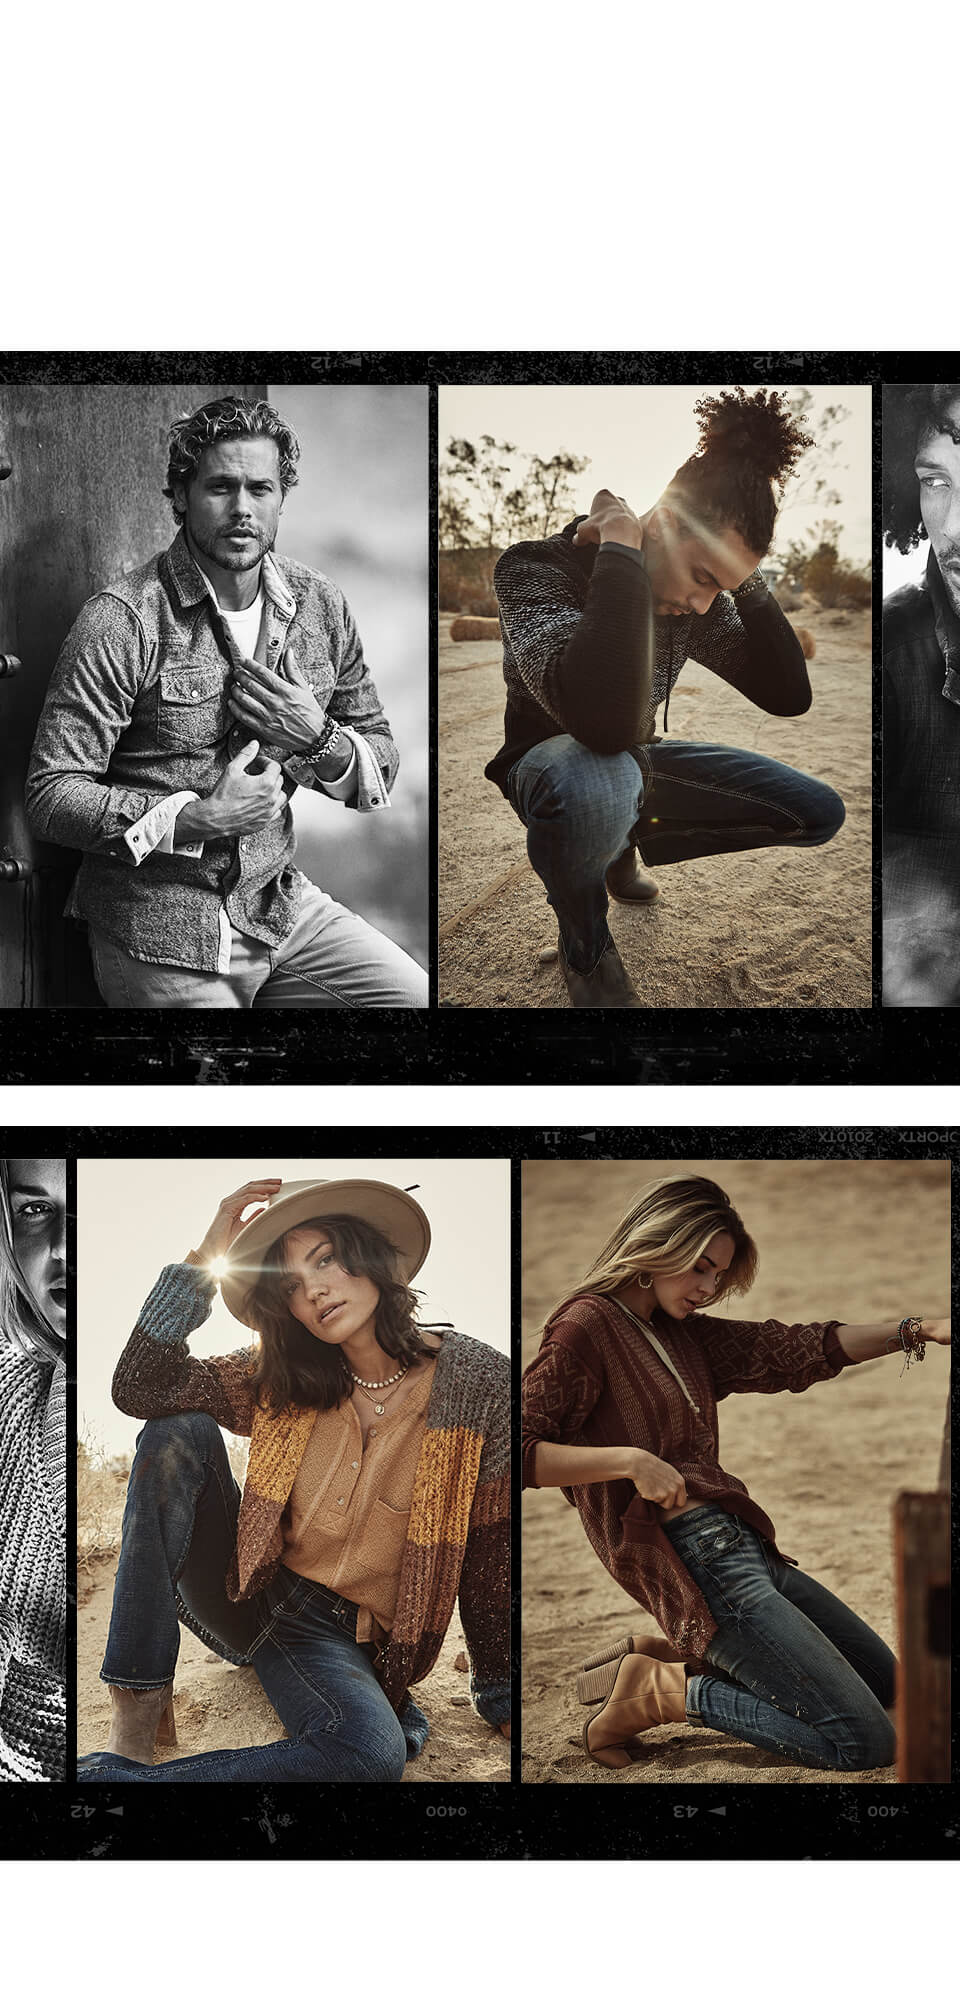 Gal wearing an orange, brown and grey BKE cardigan sweater and BKE jeans. A gal wearing a brown BKE top and BKE jeans. A guy wearing a button up BKE shirt and BKE jeans. A guy wearing a BKE sweater with dark wash BKE jeans.